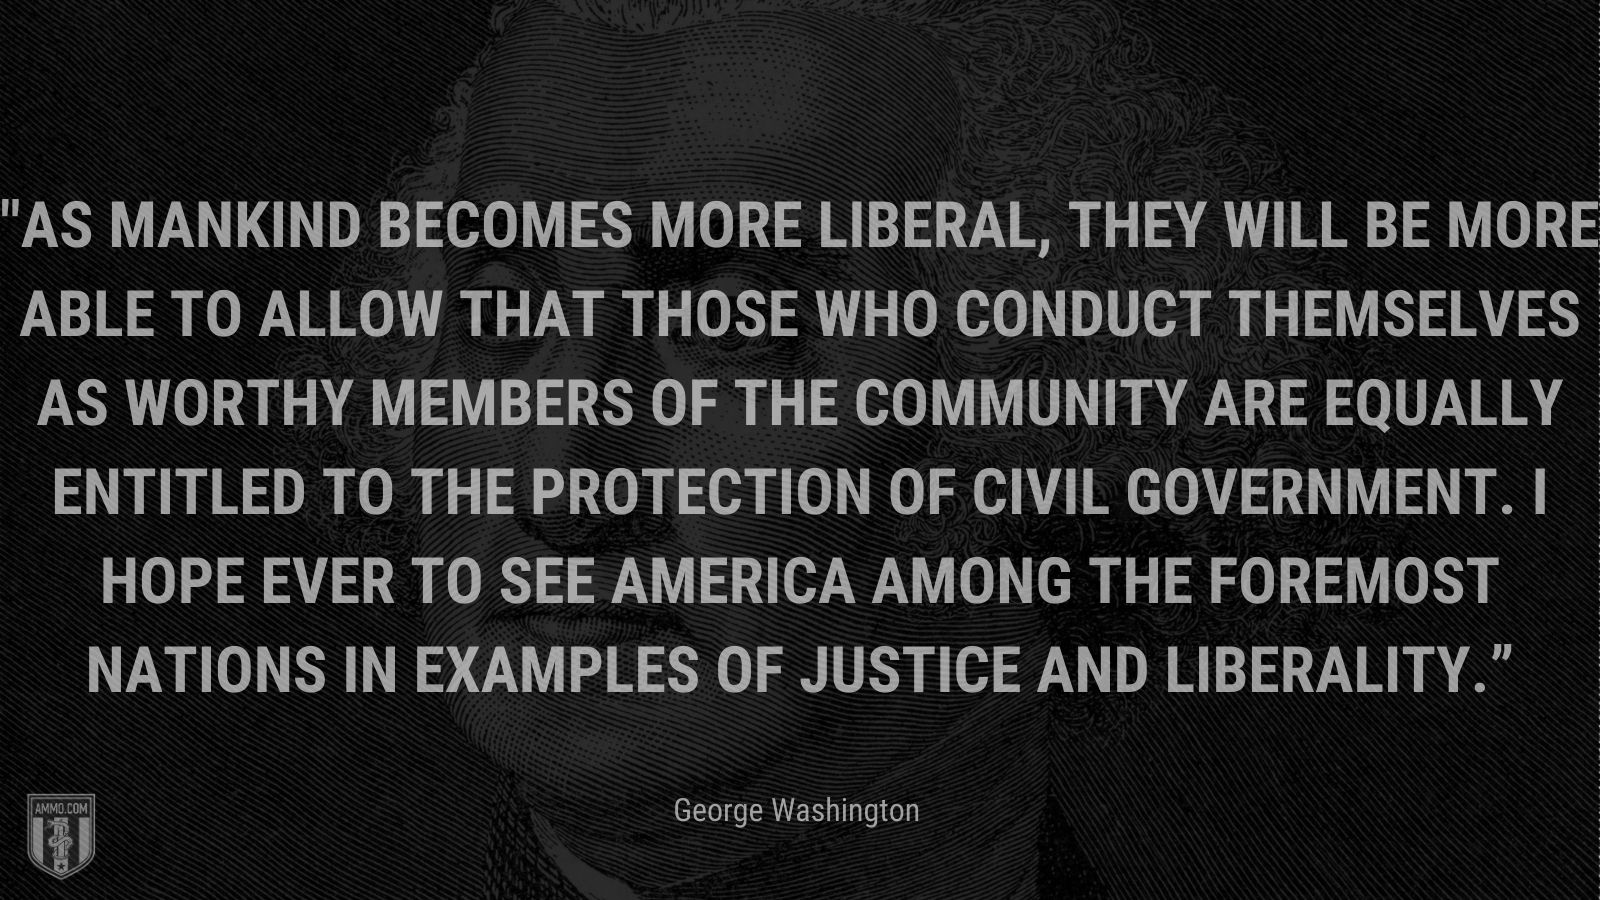 """""""As mankind becomes more liberal, they will be more able to allow that those who conduct themselves as worthy members of the community are equally entitled to the protection of civil government. I hope ever to see America among the foremost nations in examples of justice and liberality."""" - George Washington"""